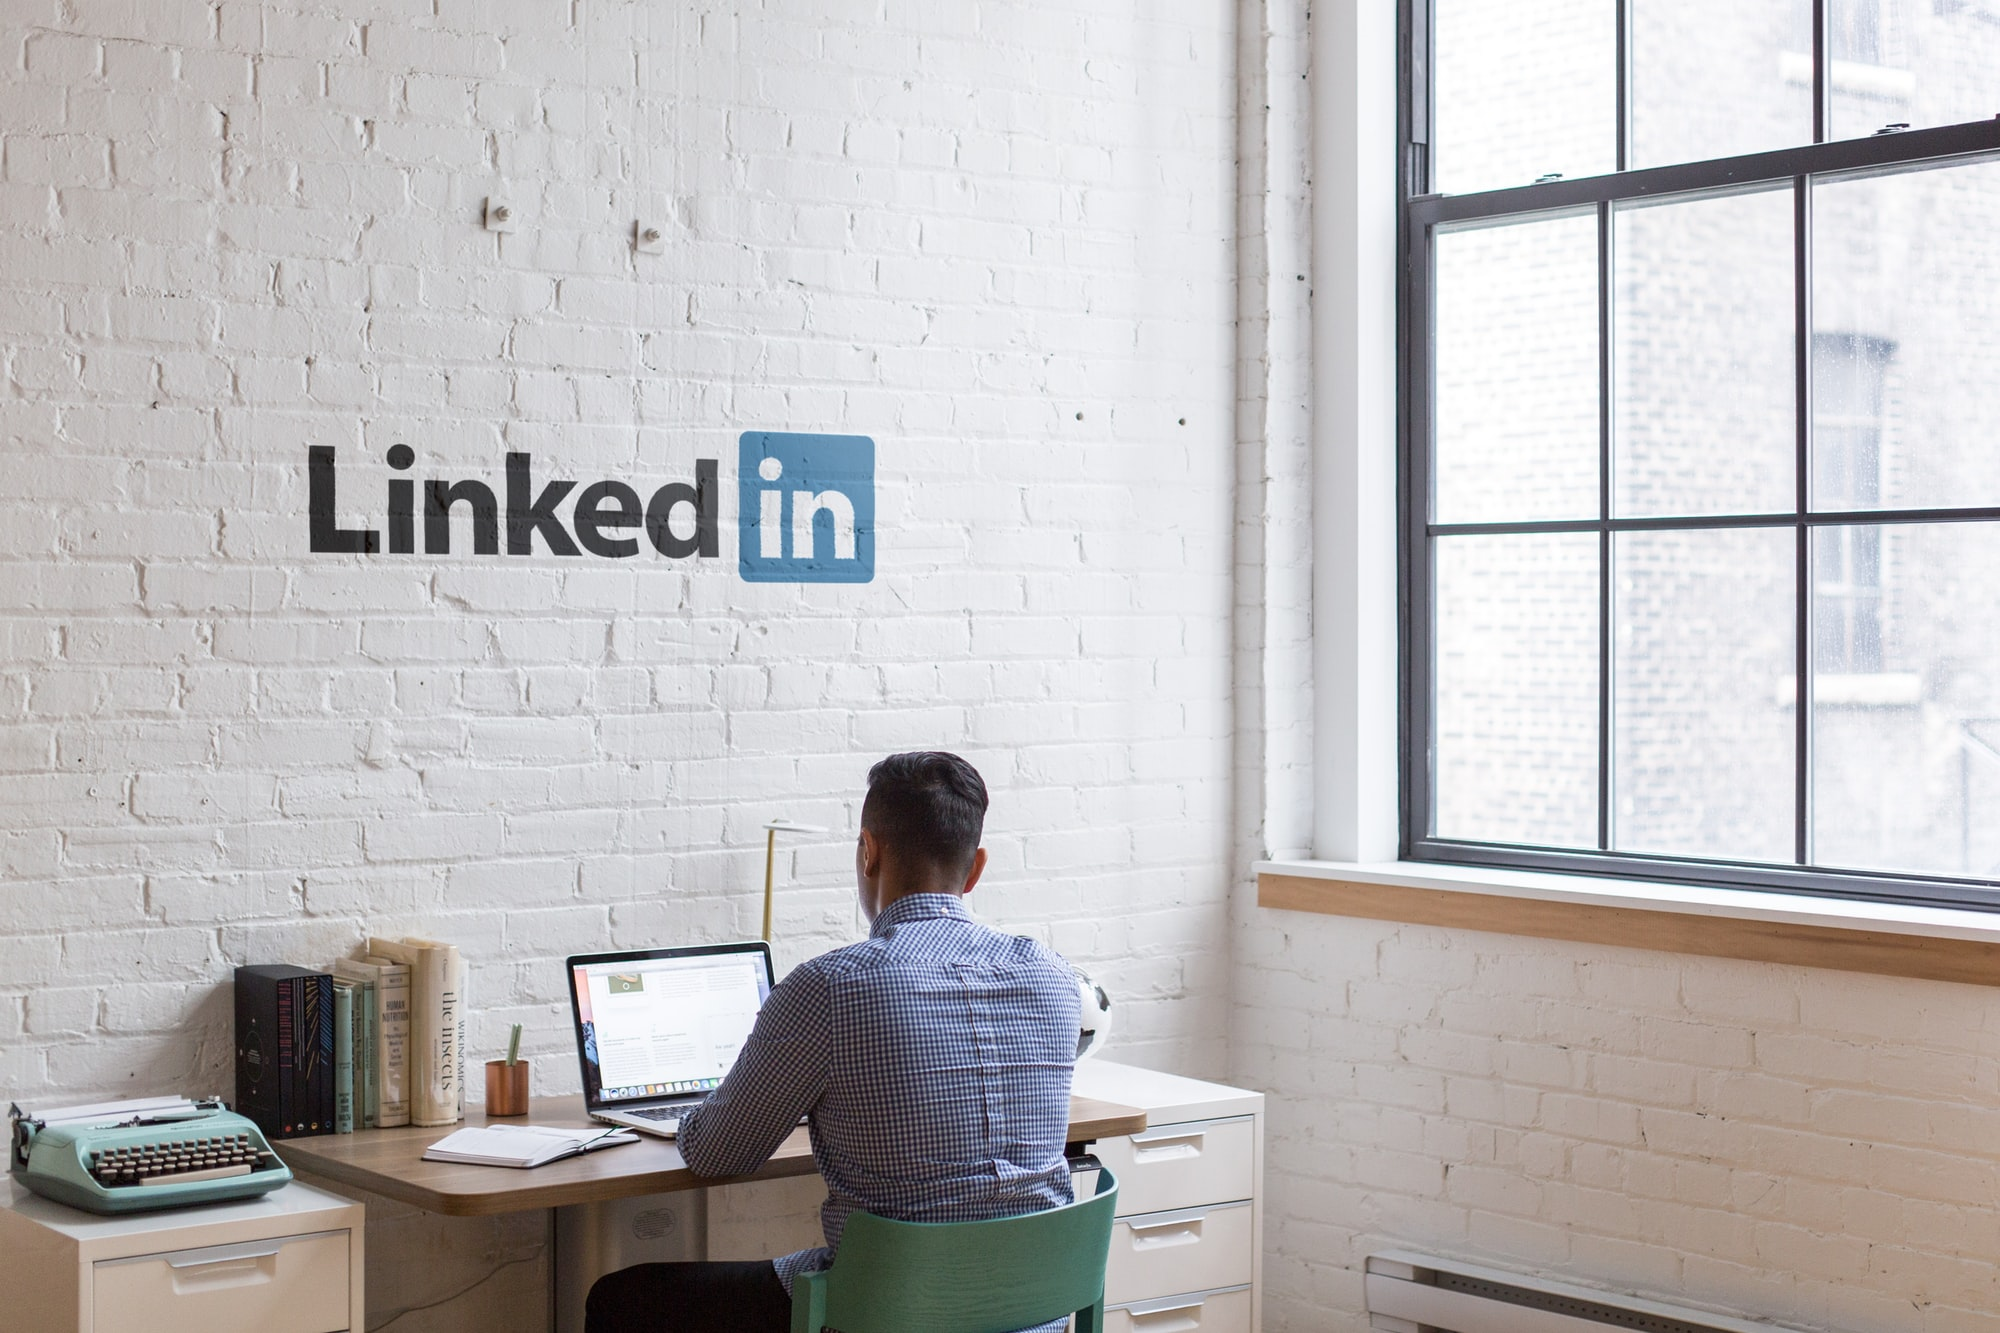 15 Types of Content to Post on LinkedIn